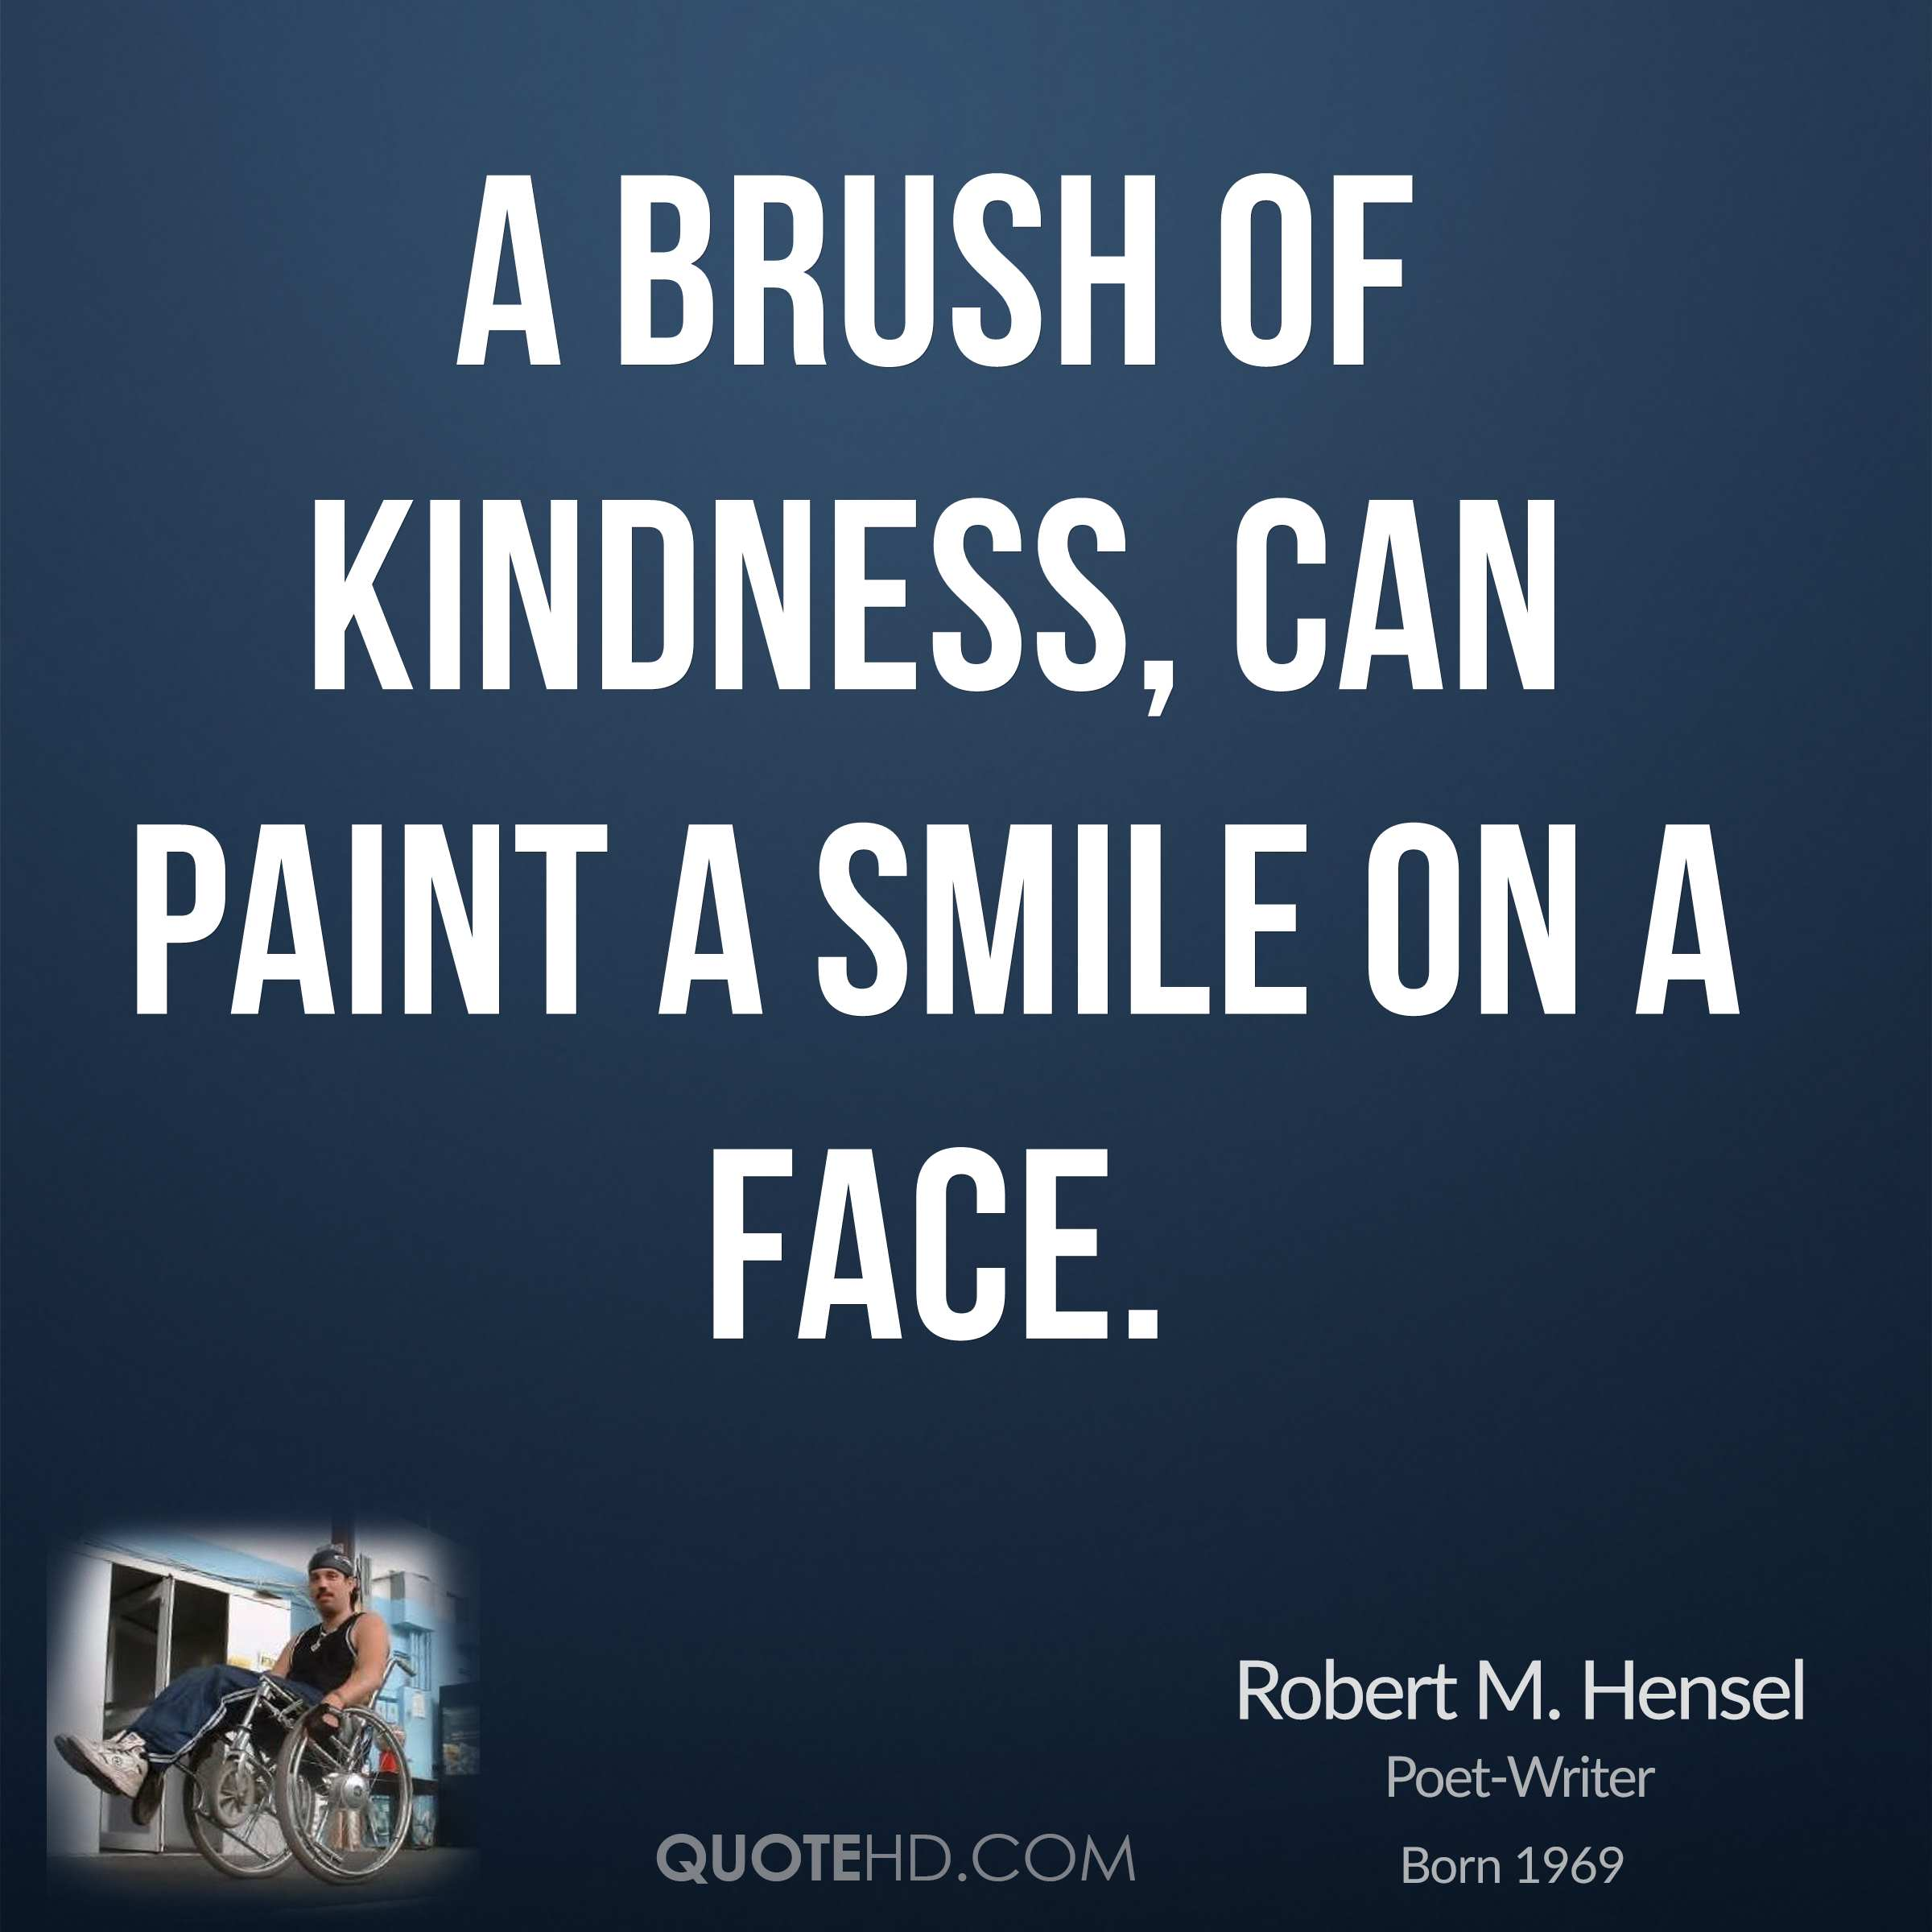 Quotes Kindness Robert Mhensel Inspirational Quotes  Quotehd